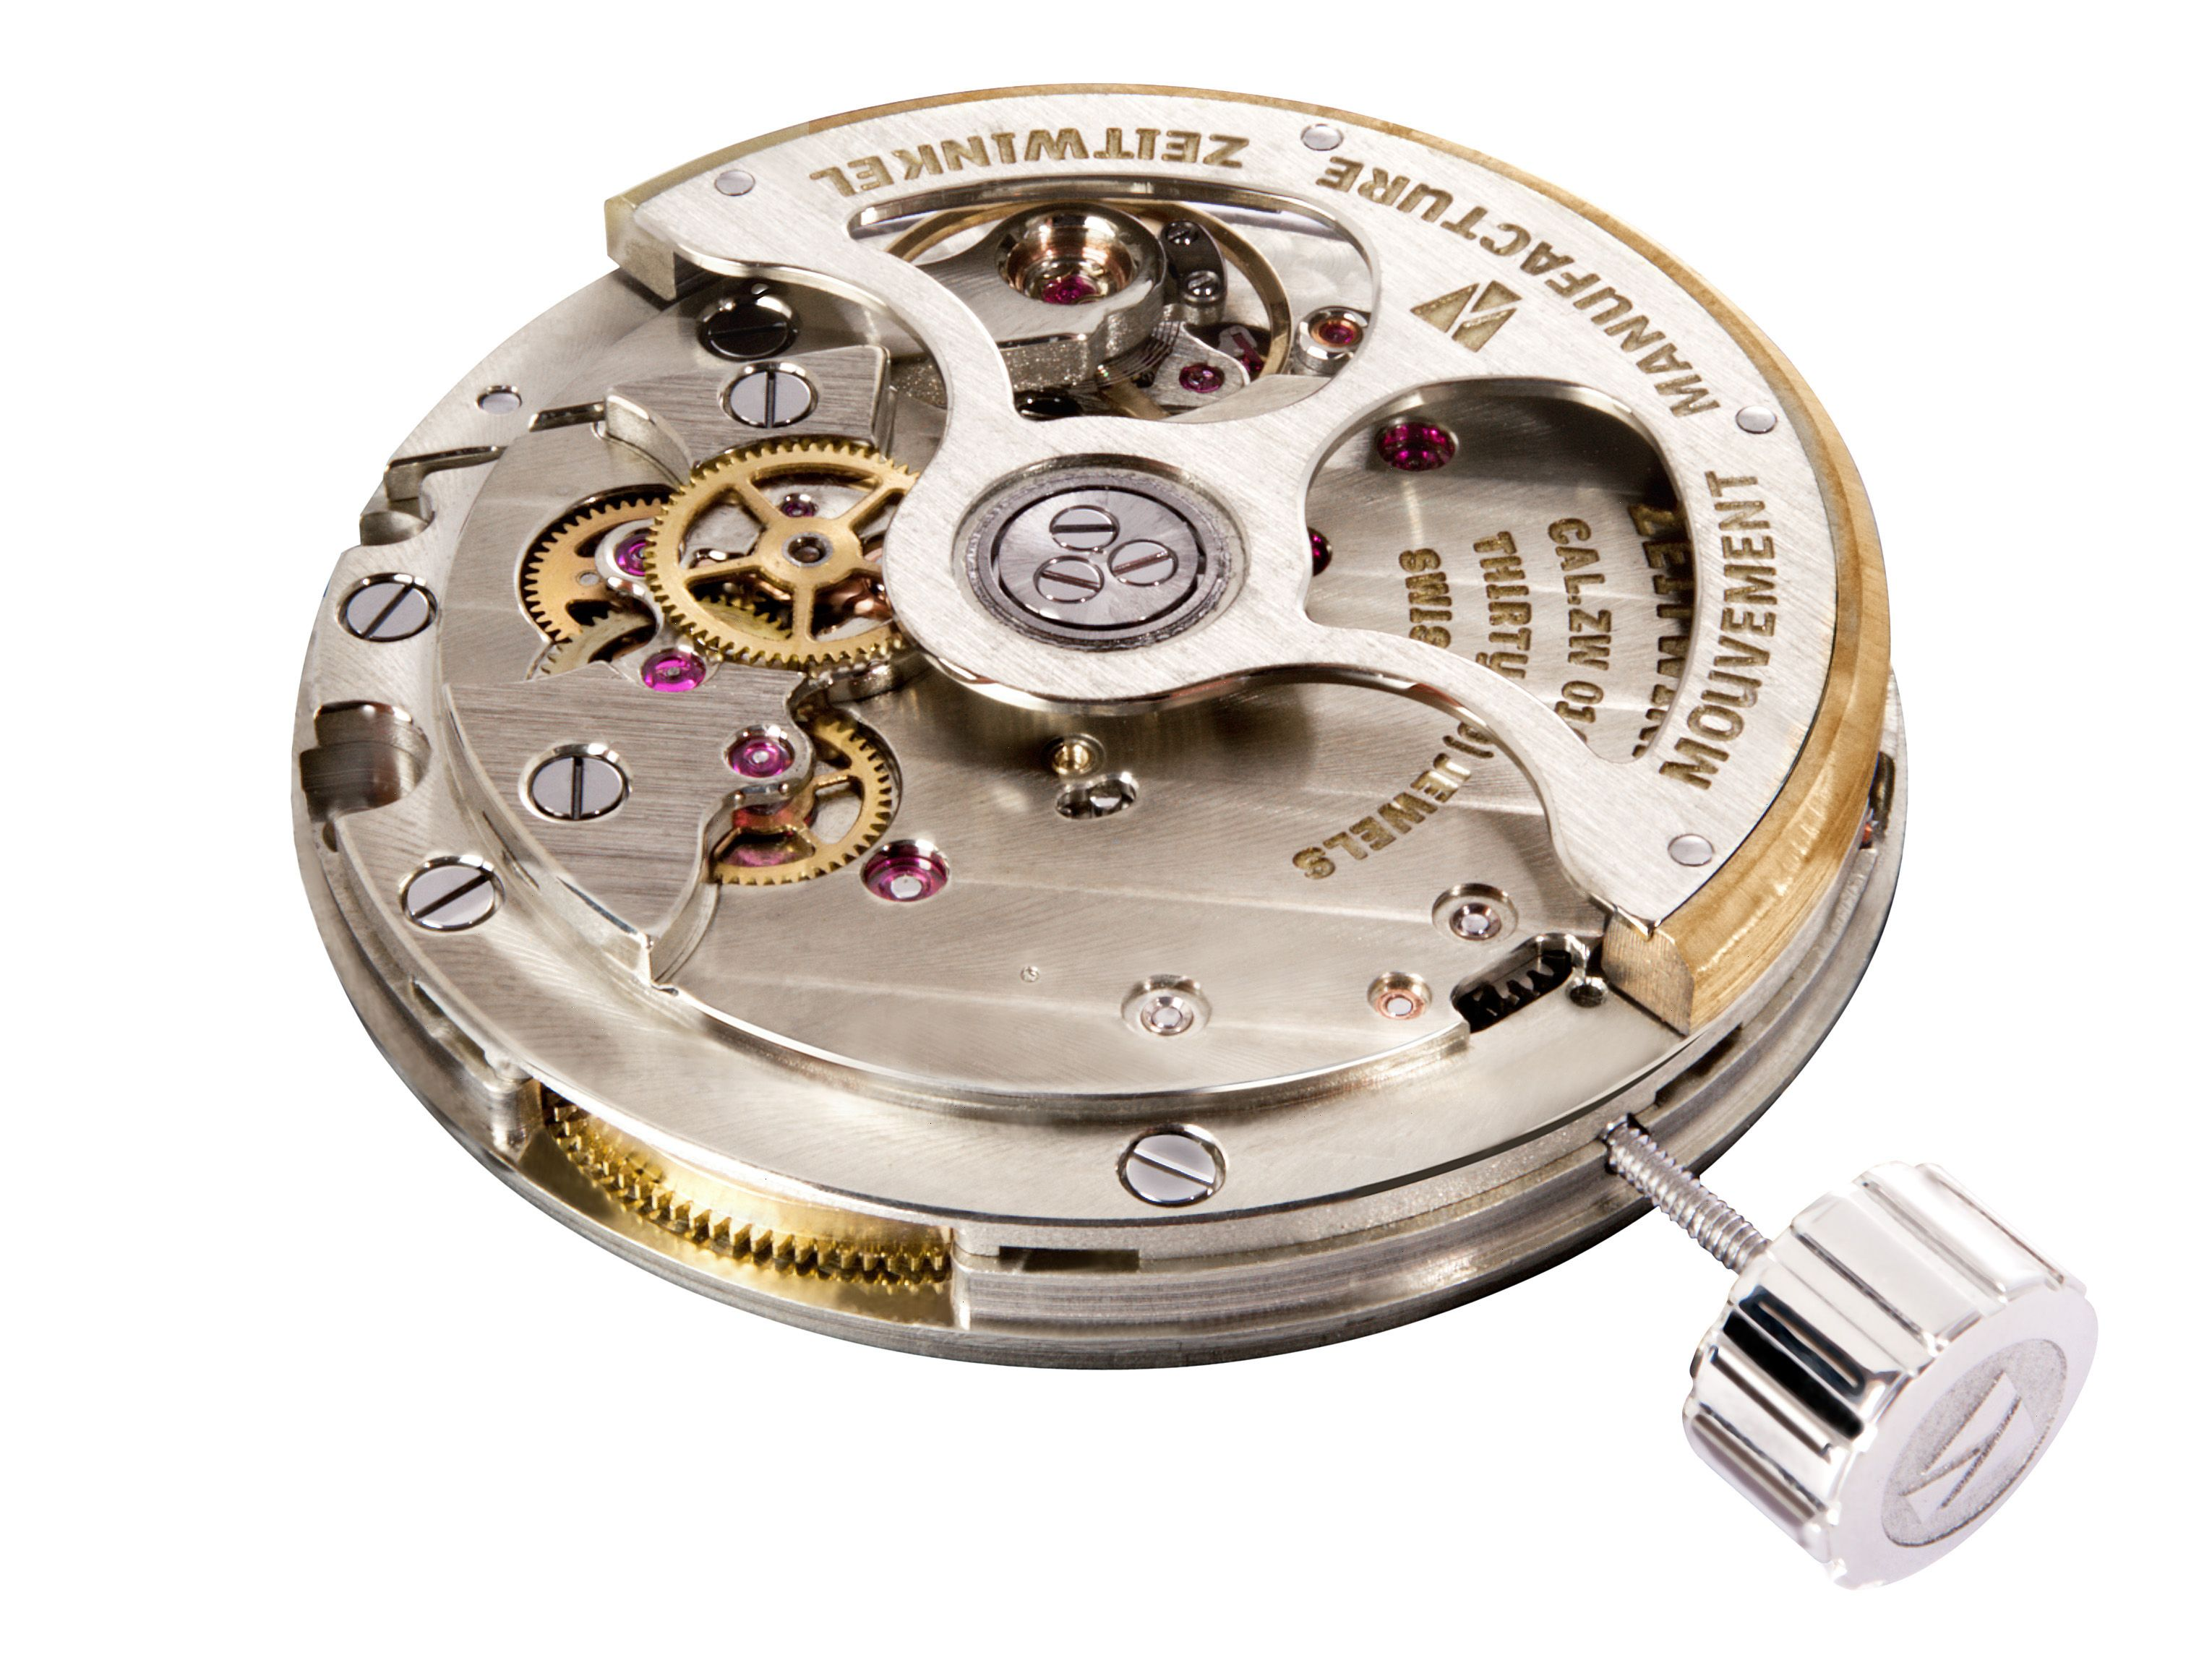 Zeitwinkel's base caliber ZW0102, automatic winding, 13½ lines, 30.40 mm, >72h autonomy, 30Jewels more information @ www.zeitwinkel.ch